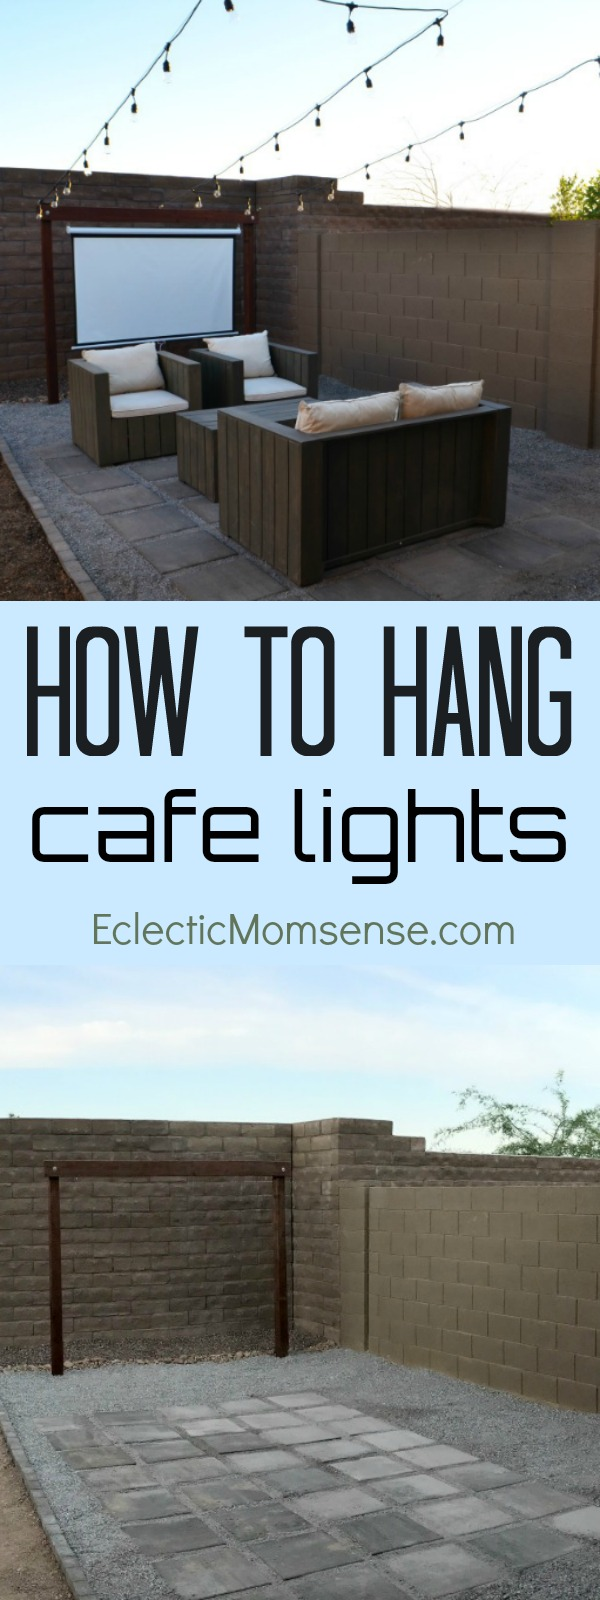 Outdoor Entertaining- Setting up a space for parties and How to Hang Cafe Lights.